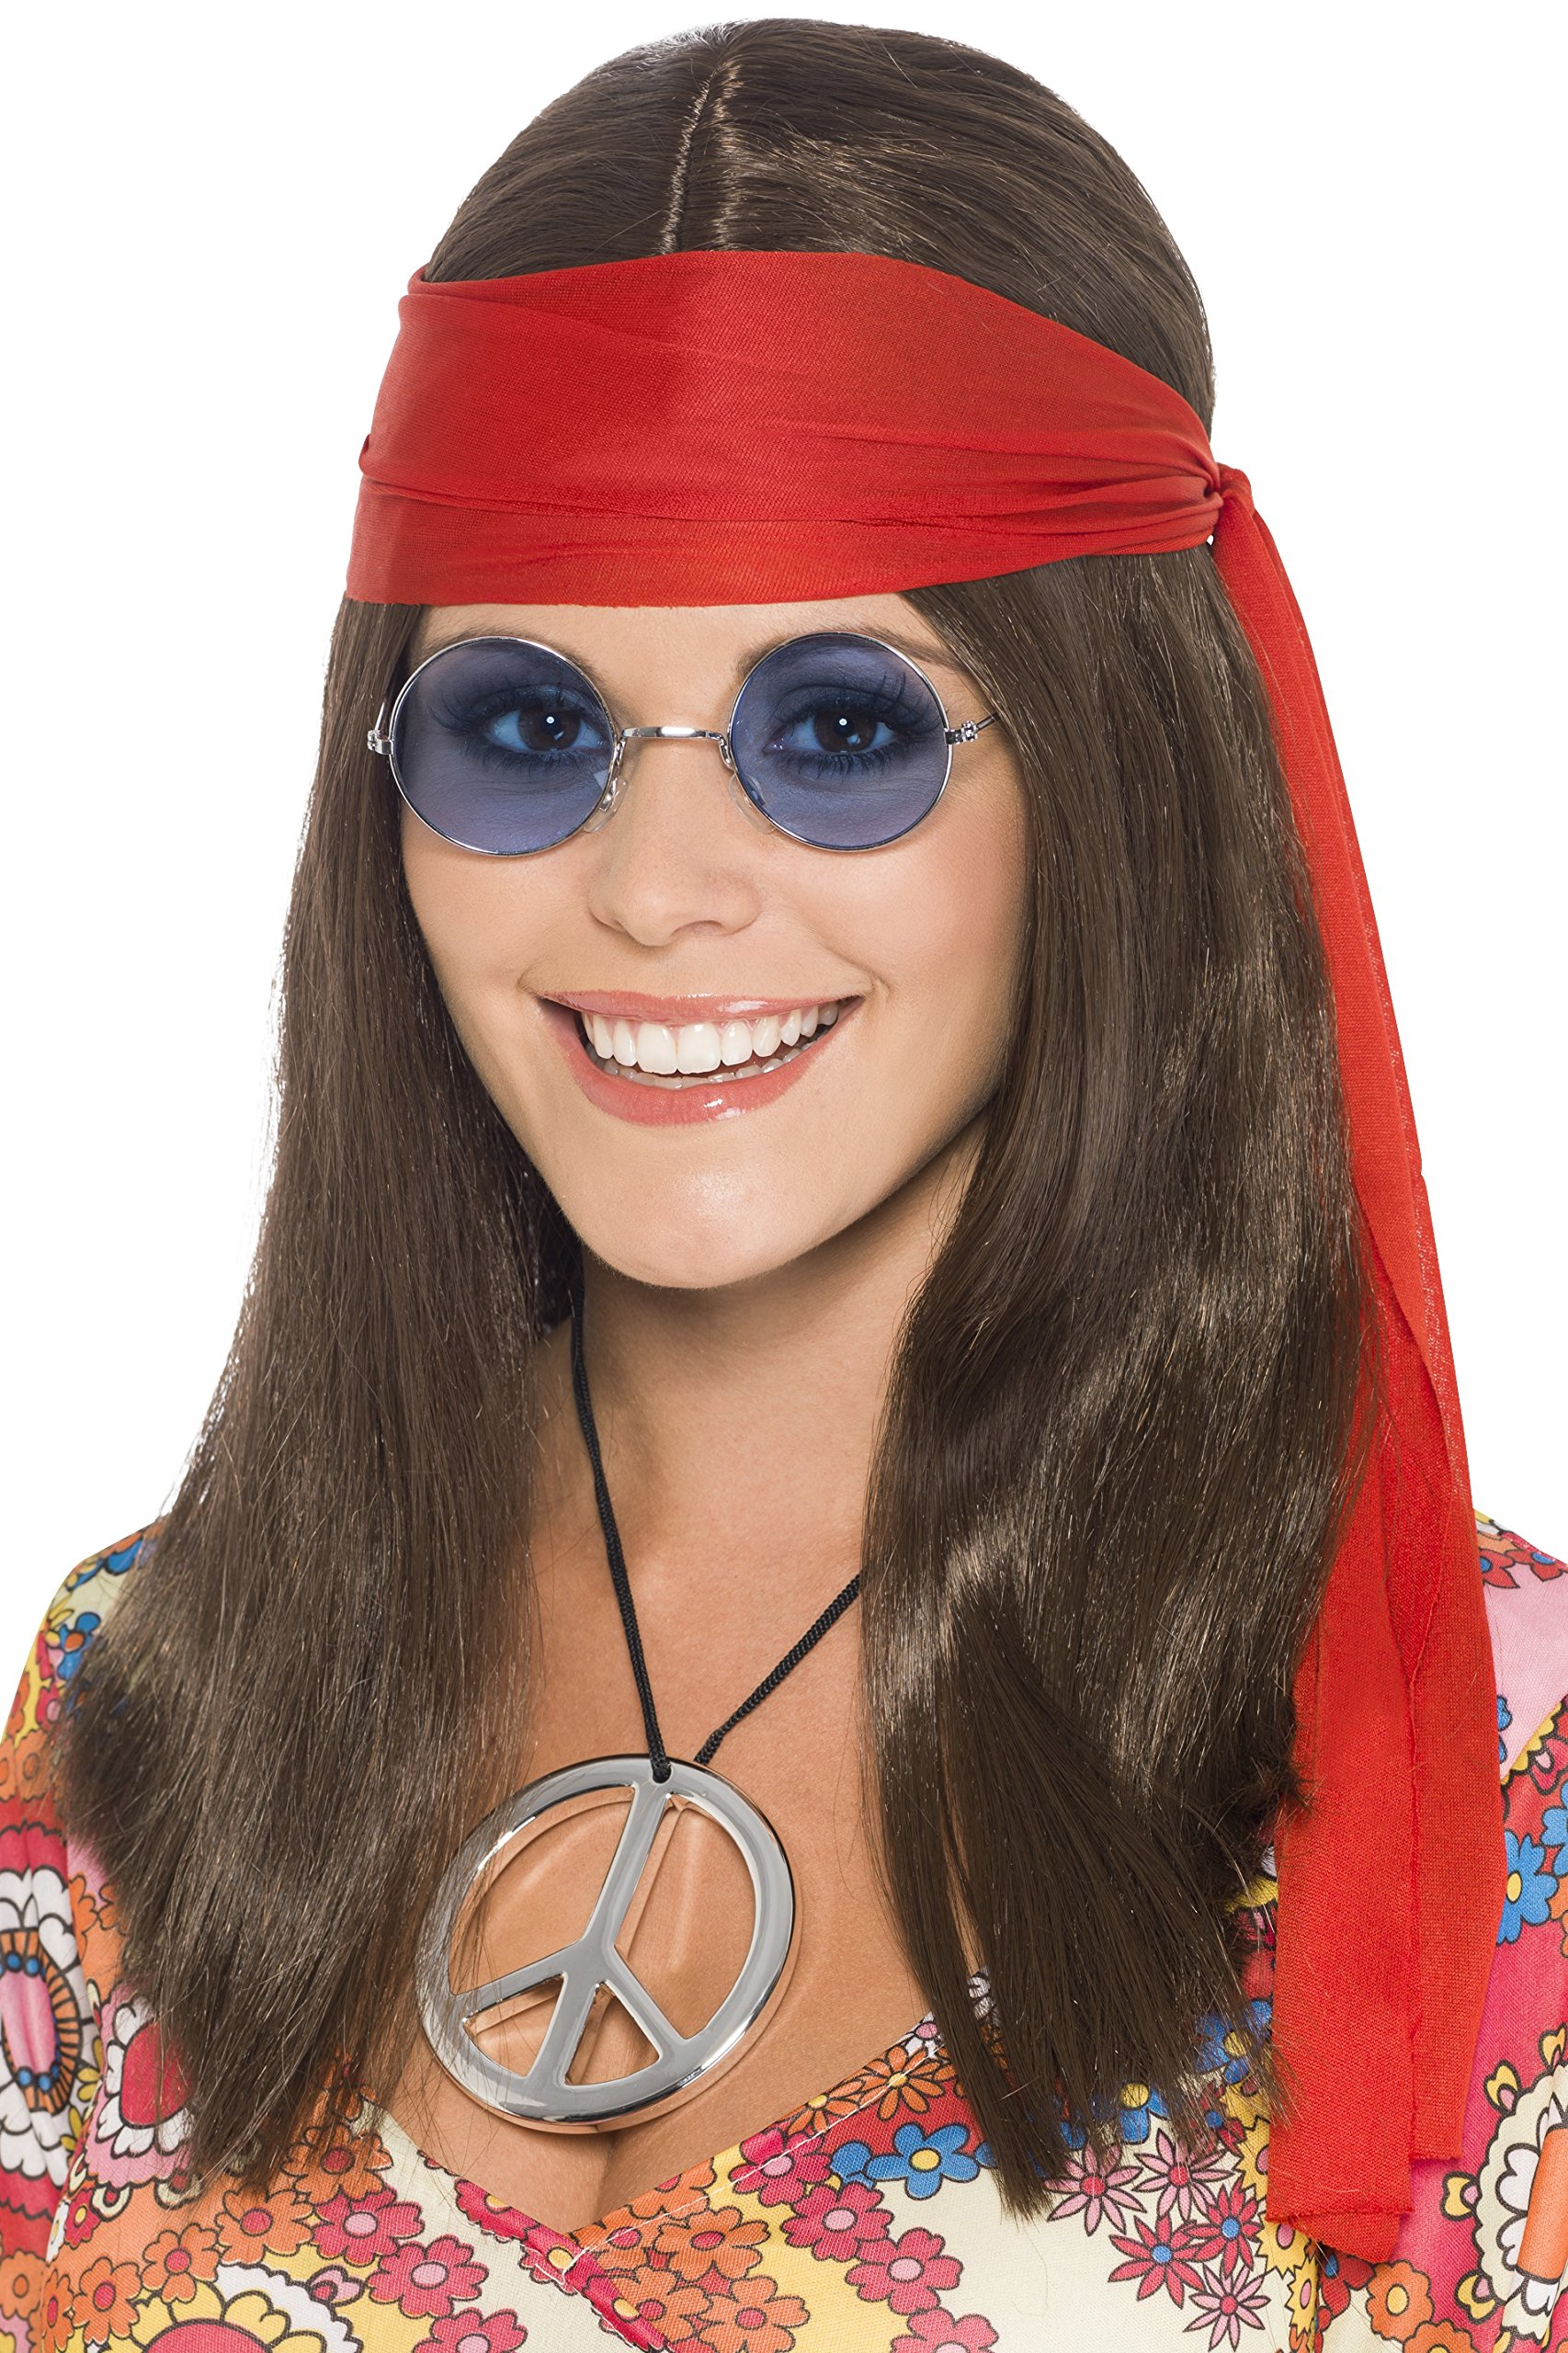 Smiffy's Women's Hippie Chick Kit, Wig, Sunglasses, Peace Sign Necklace & Headband, One Size, 21338